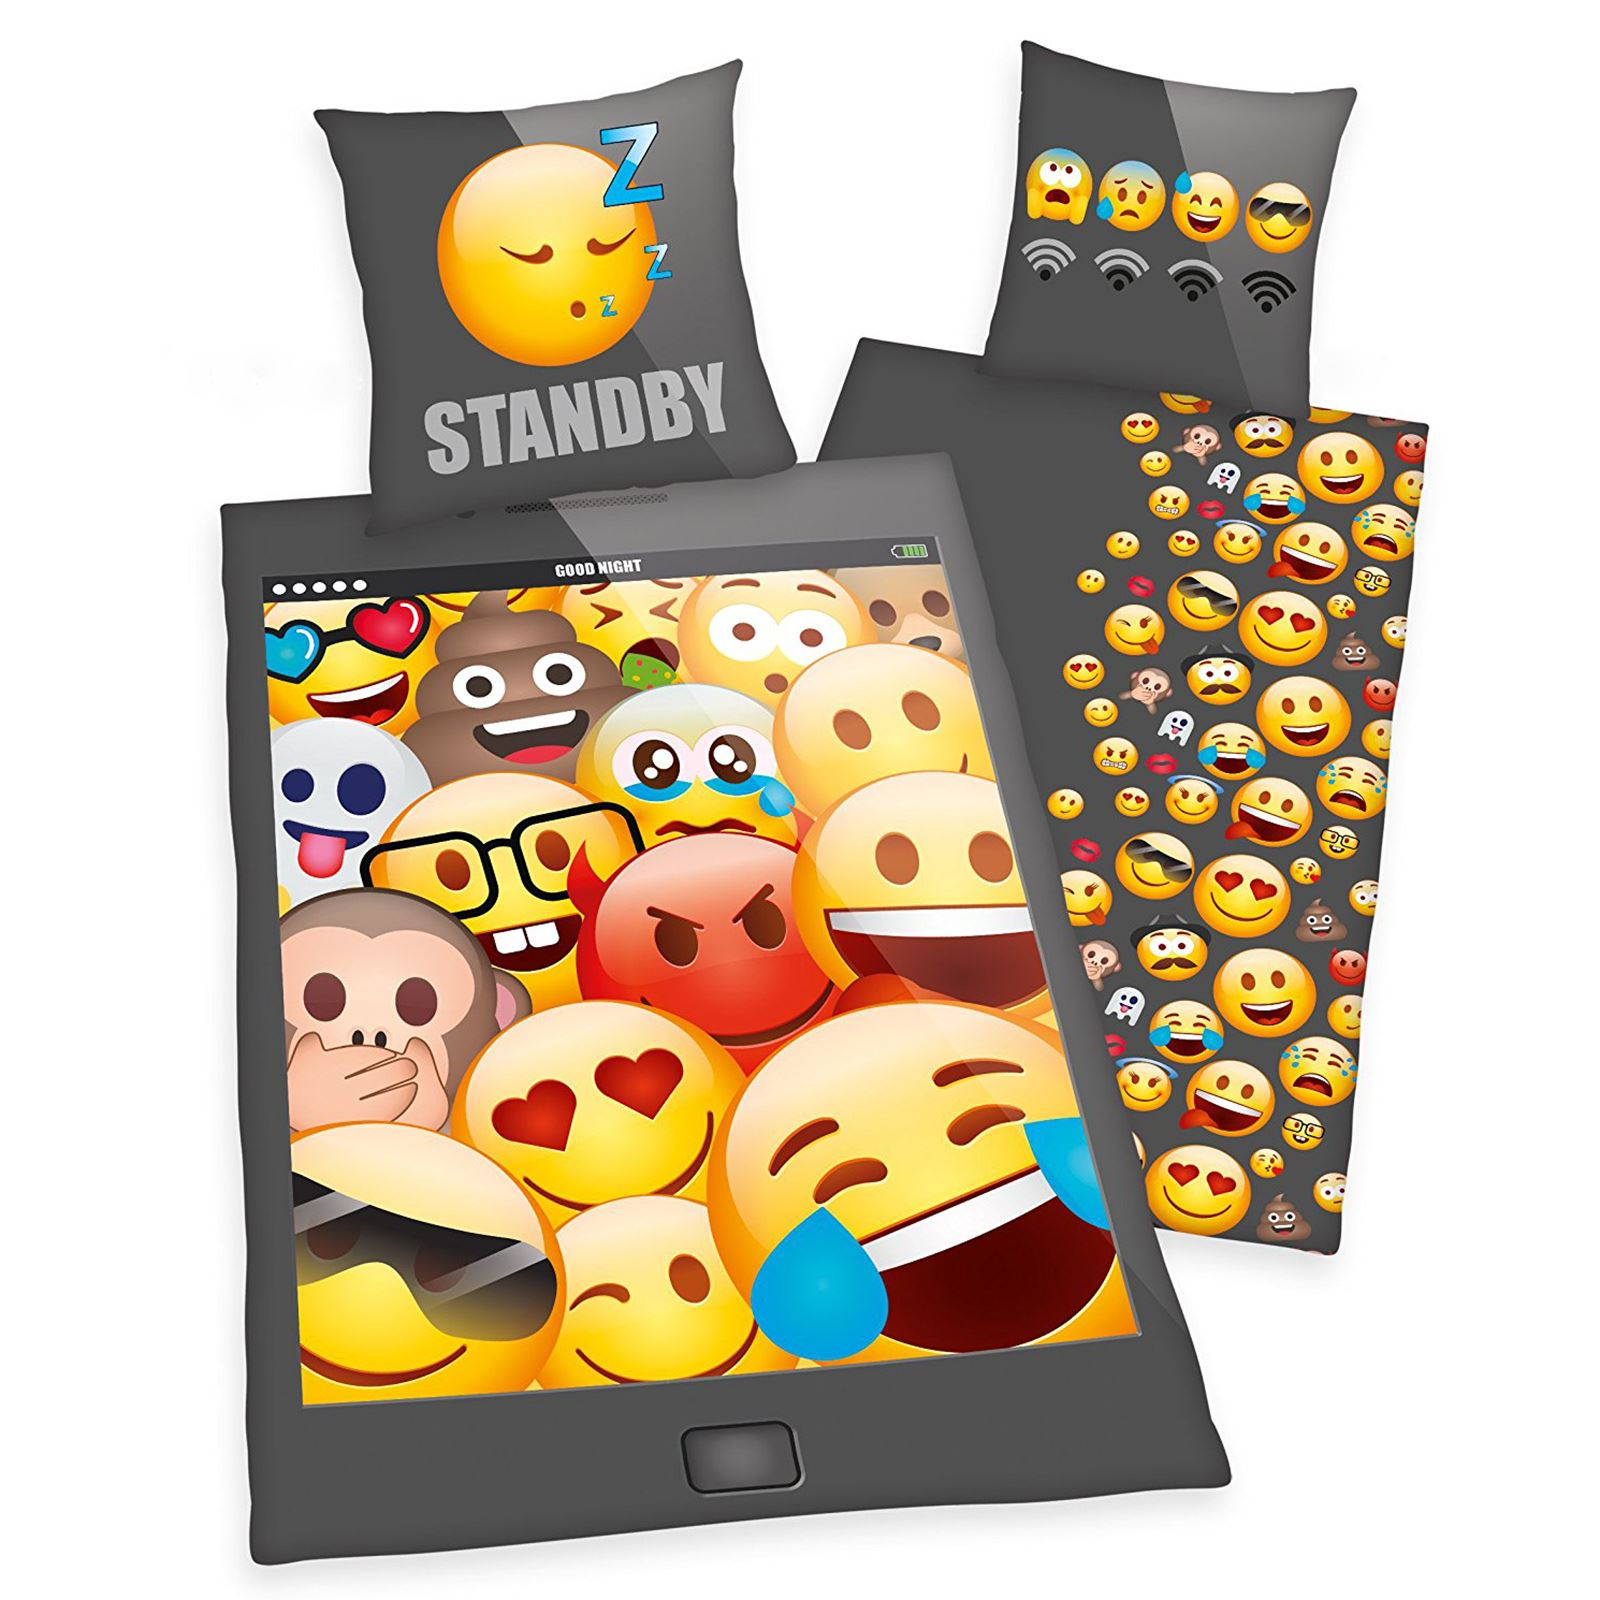 Emoji-Housse-de-couette-ensembles-Simple-amp-Double-disponible-Drole-Smiley